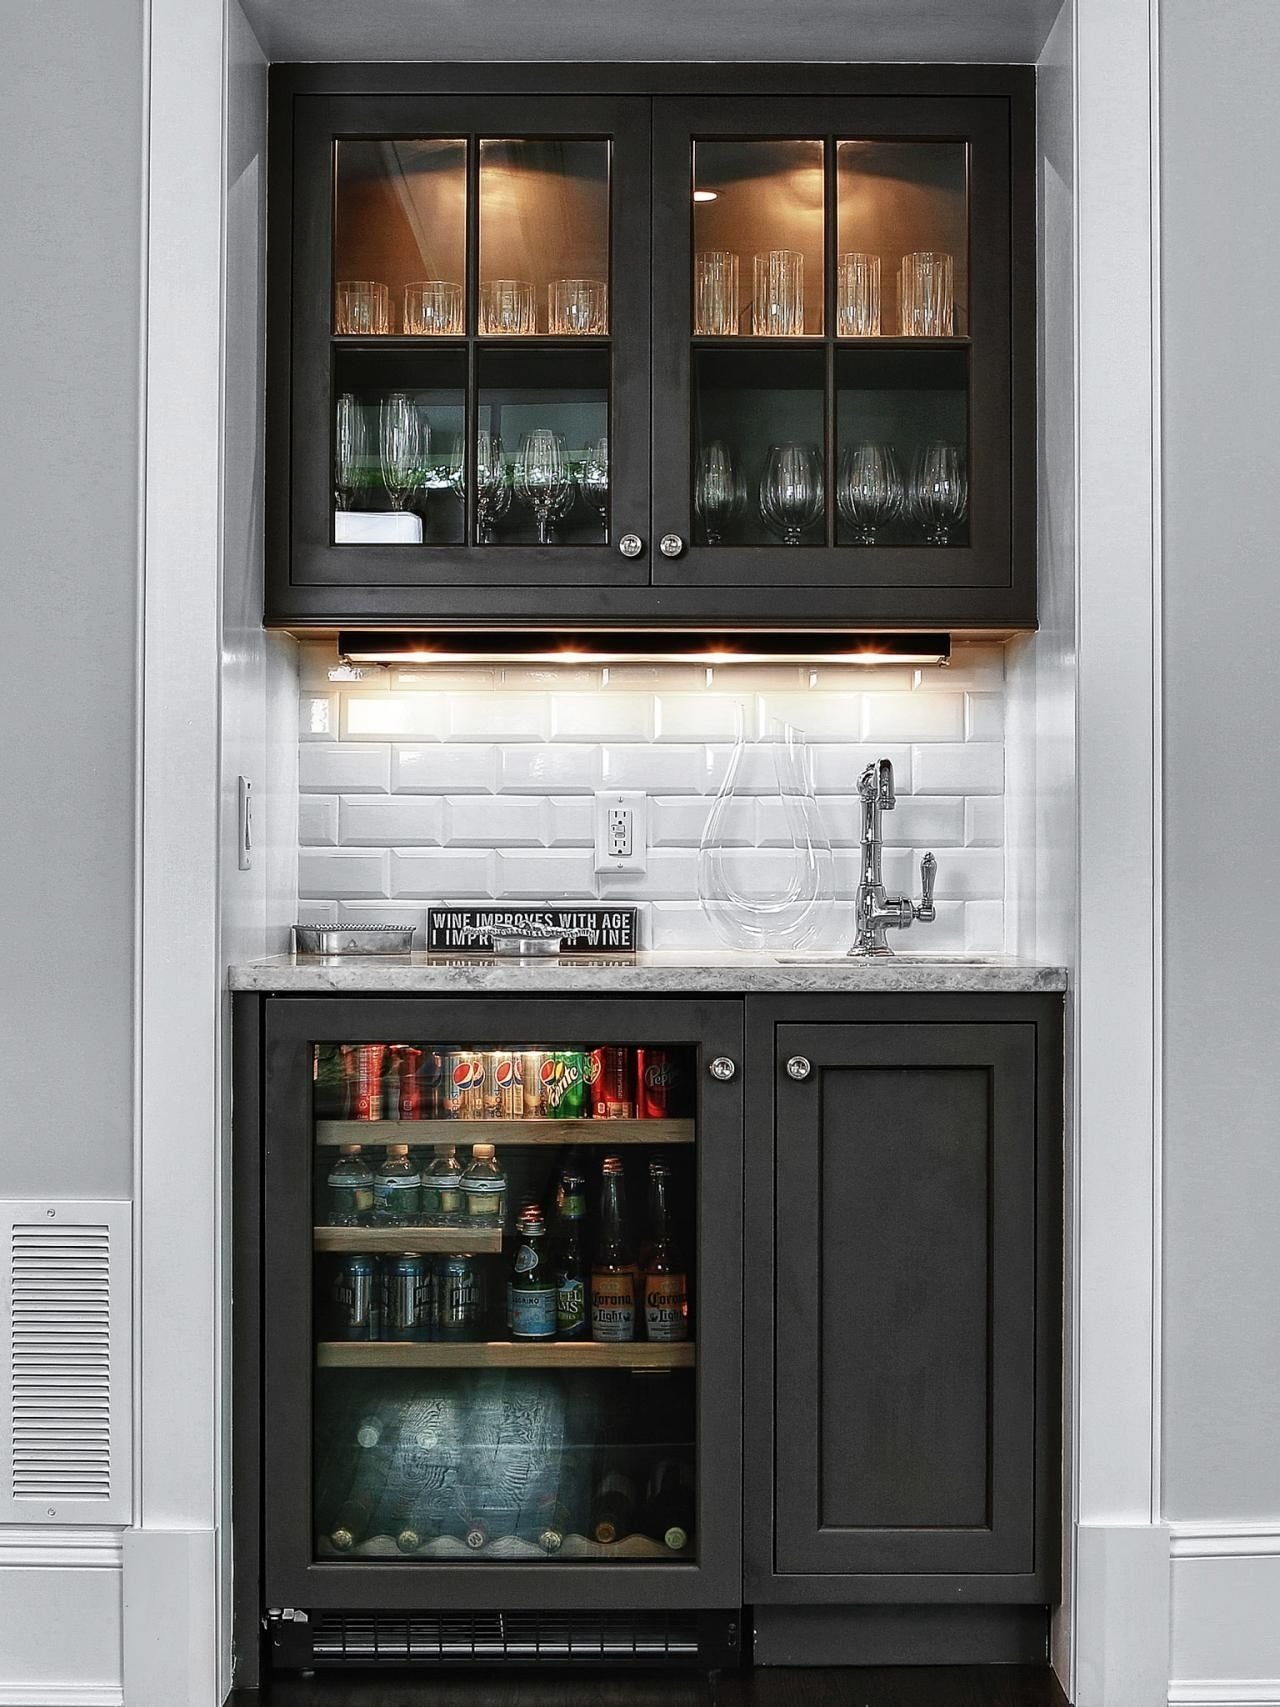 10 Lovable Bar Ideas For Small Spaces 15 stylish small home bar ideas remodeling ideas hgtv and basements 3 2020